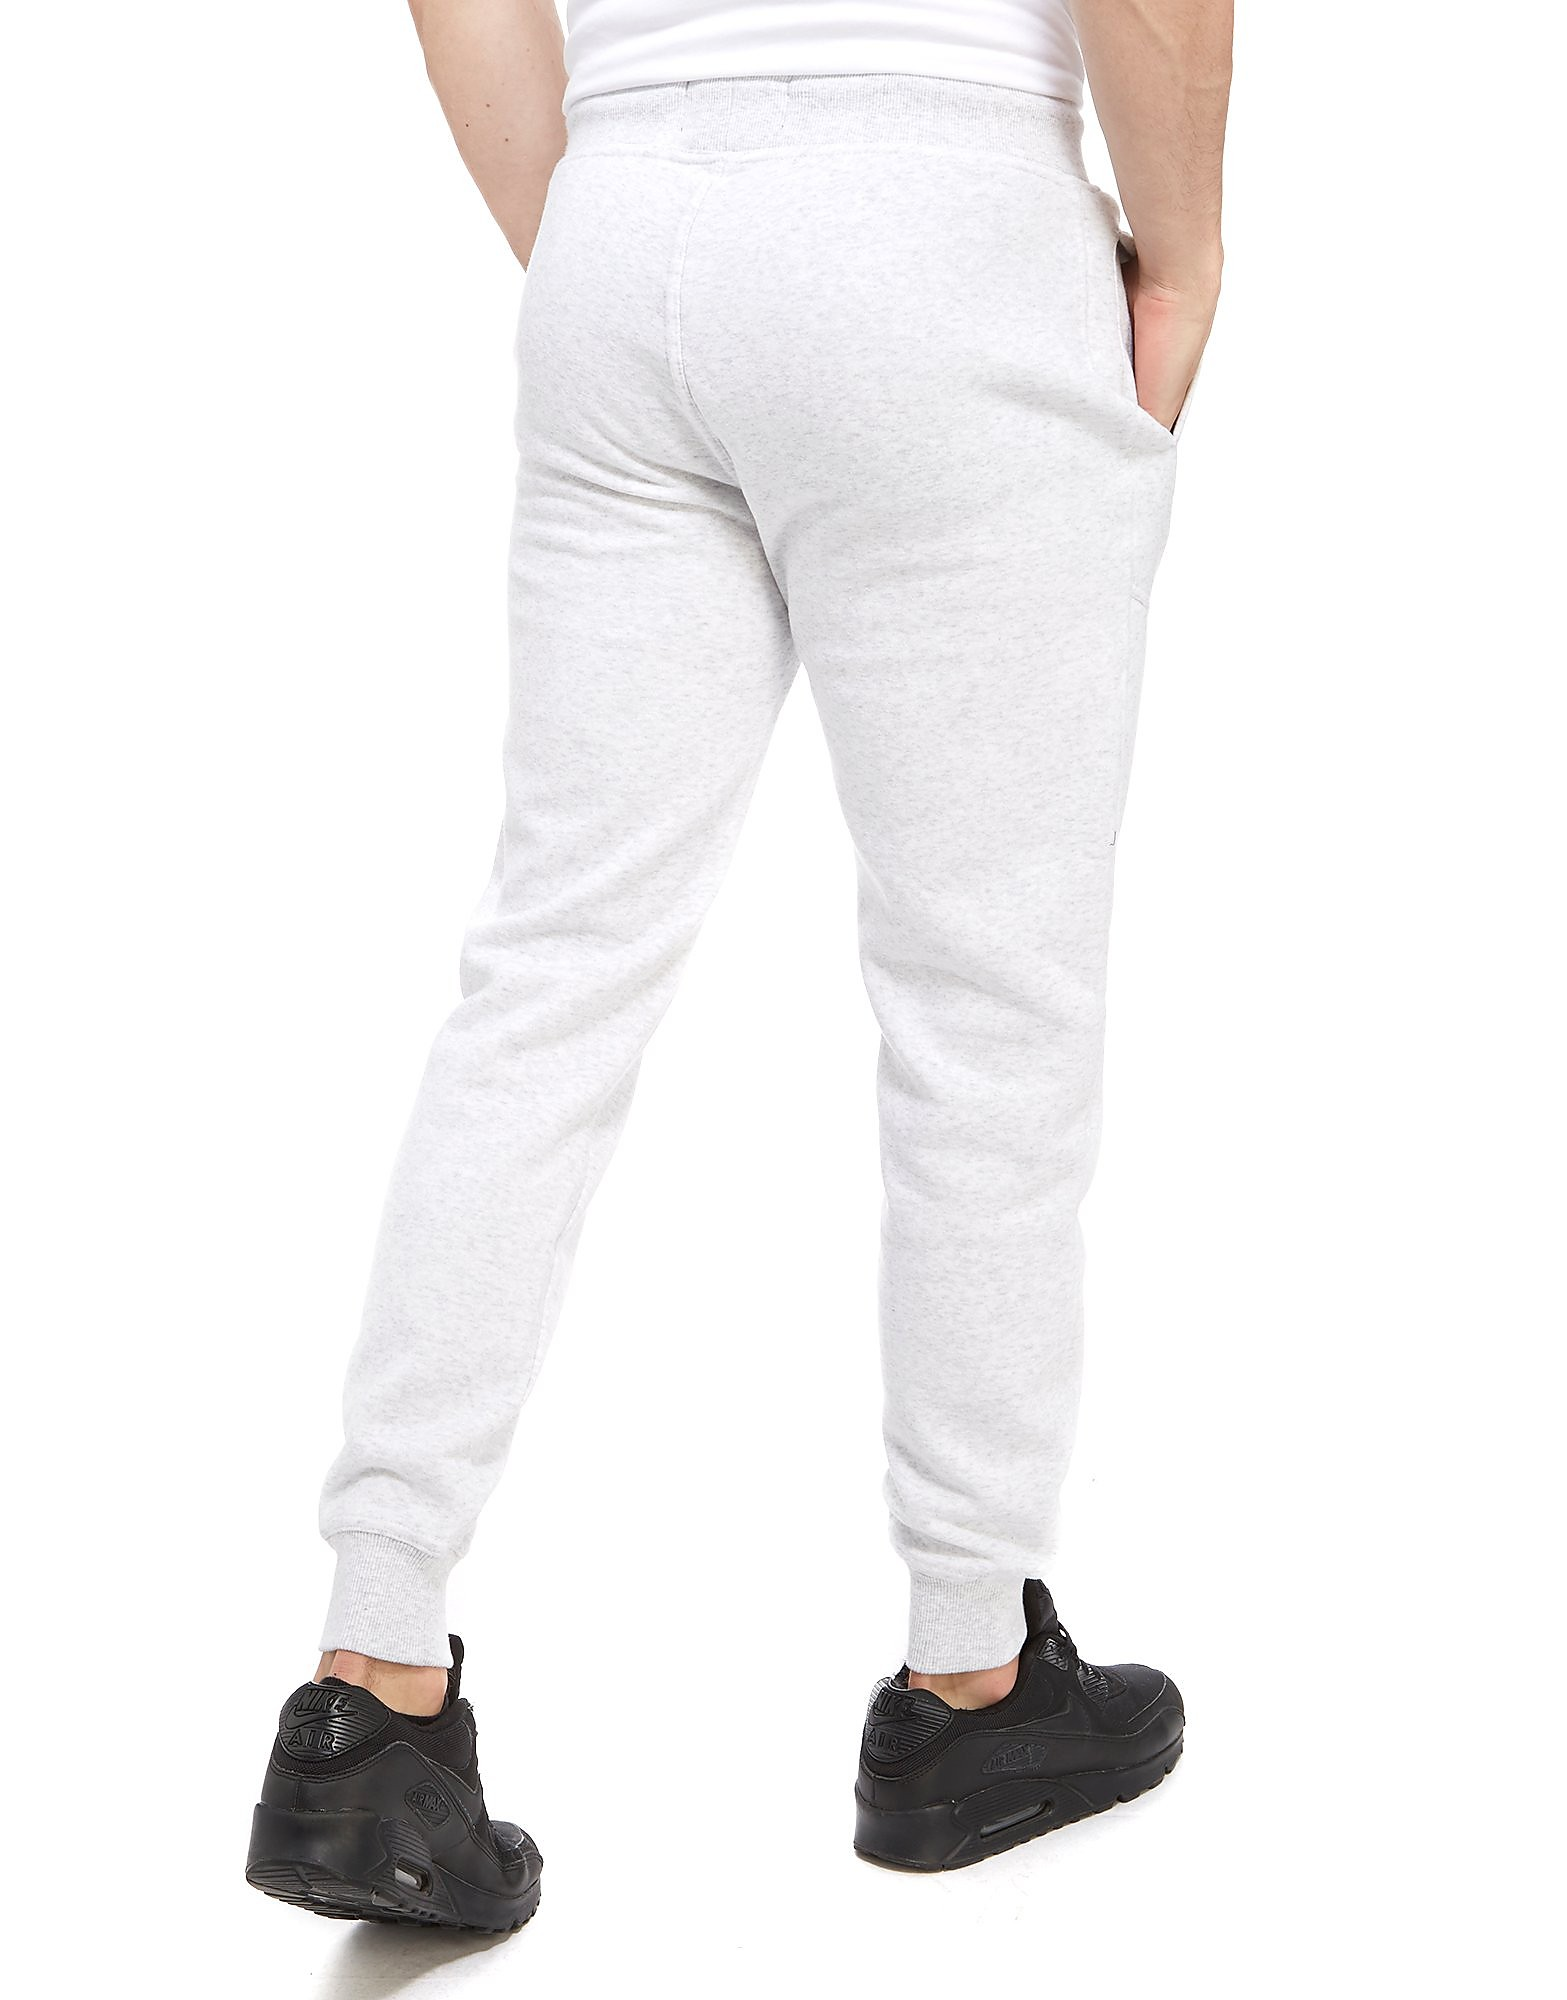 McKenzie pantalón Stirling Fleece